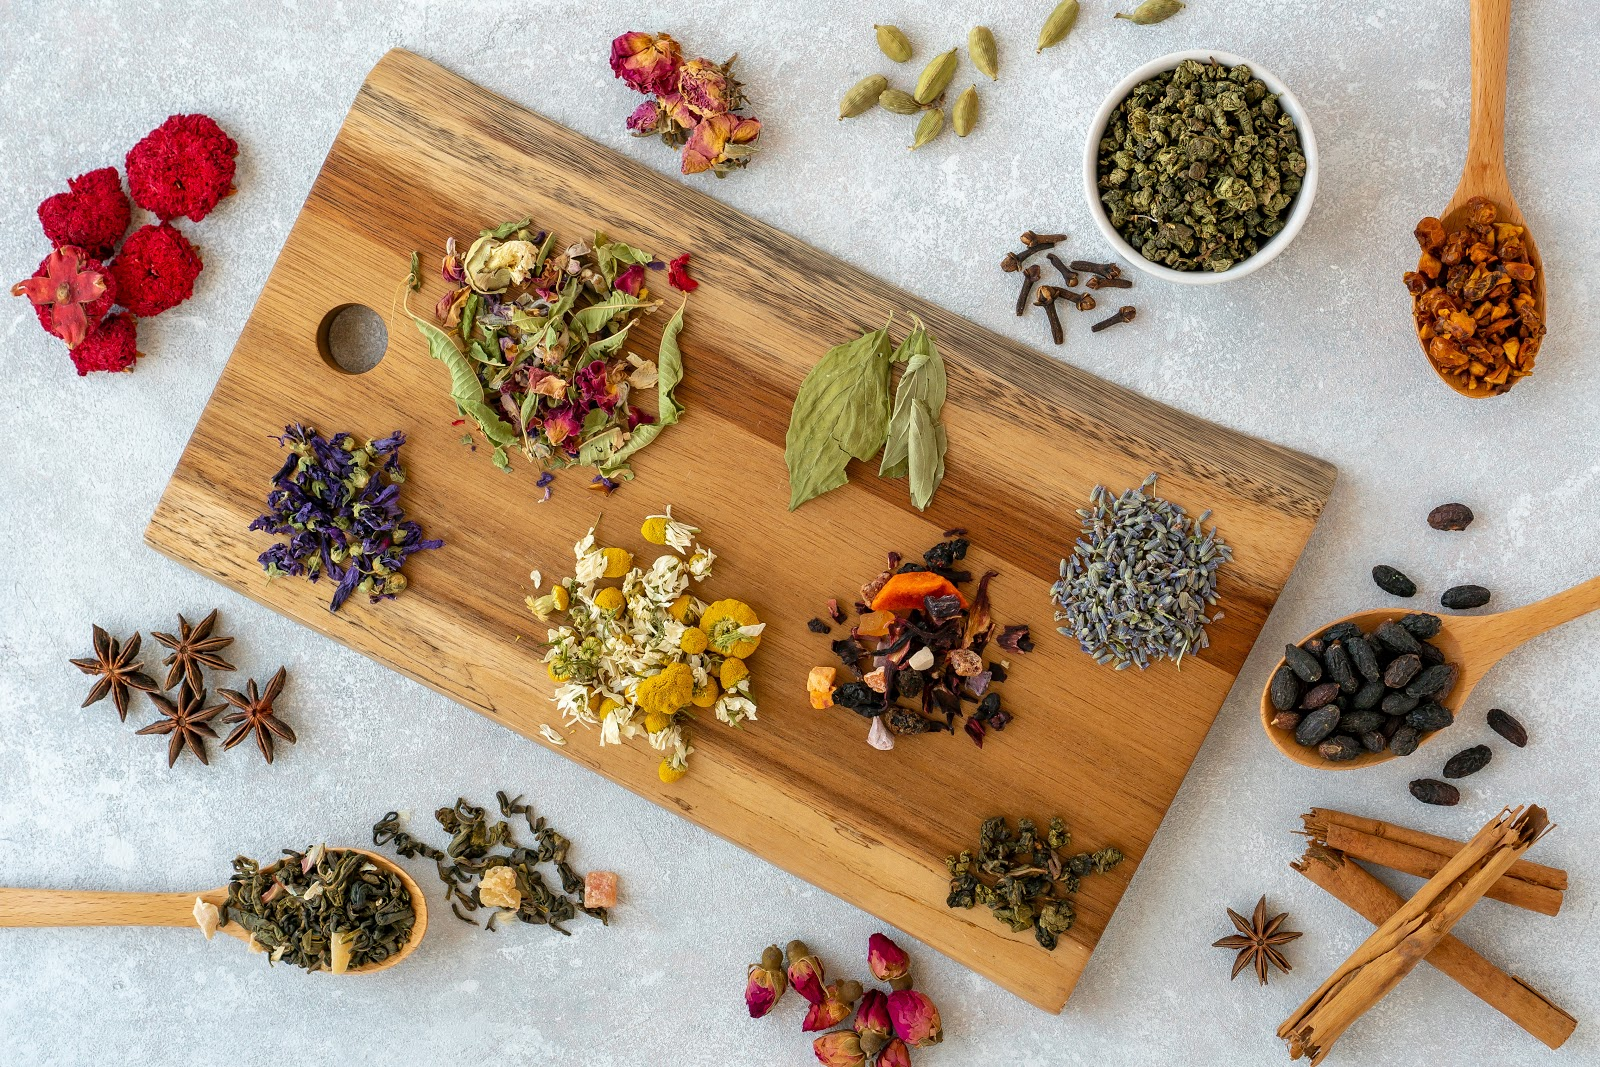 tea sampler on cutting board